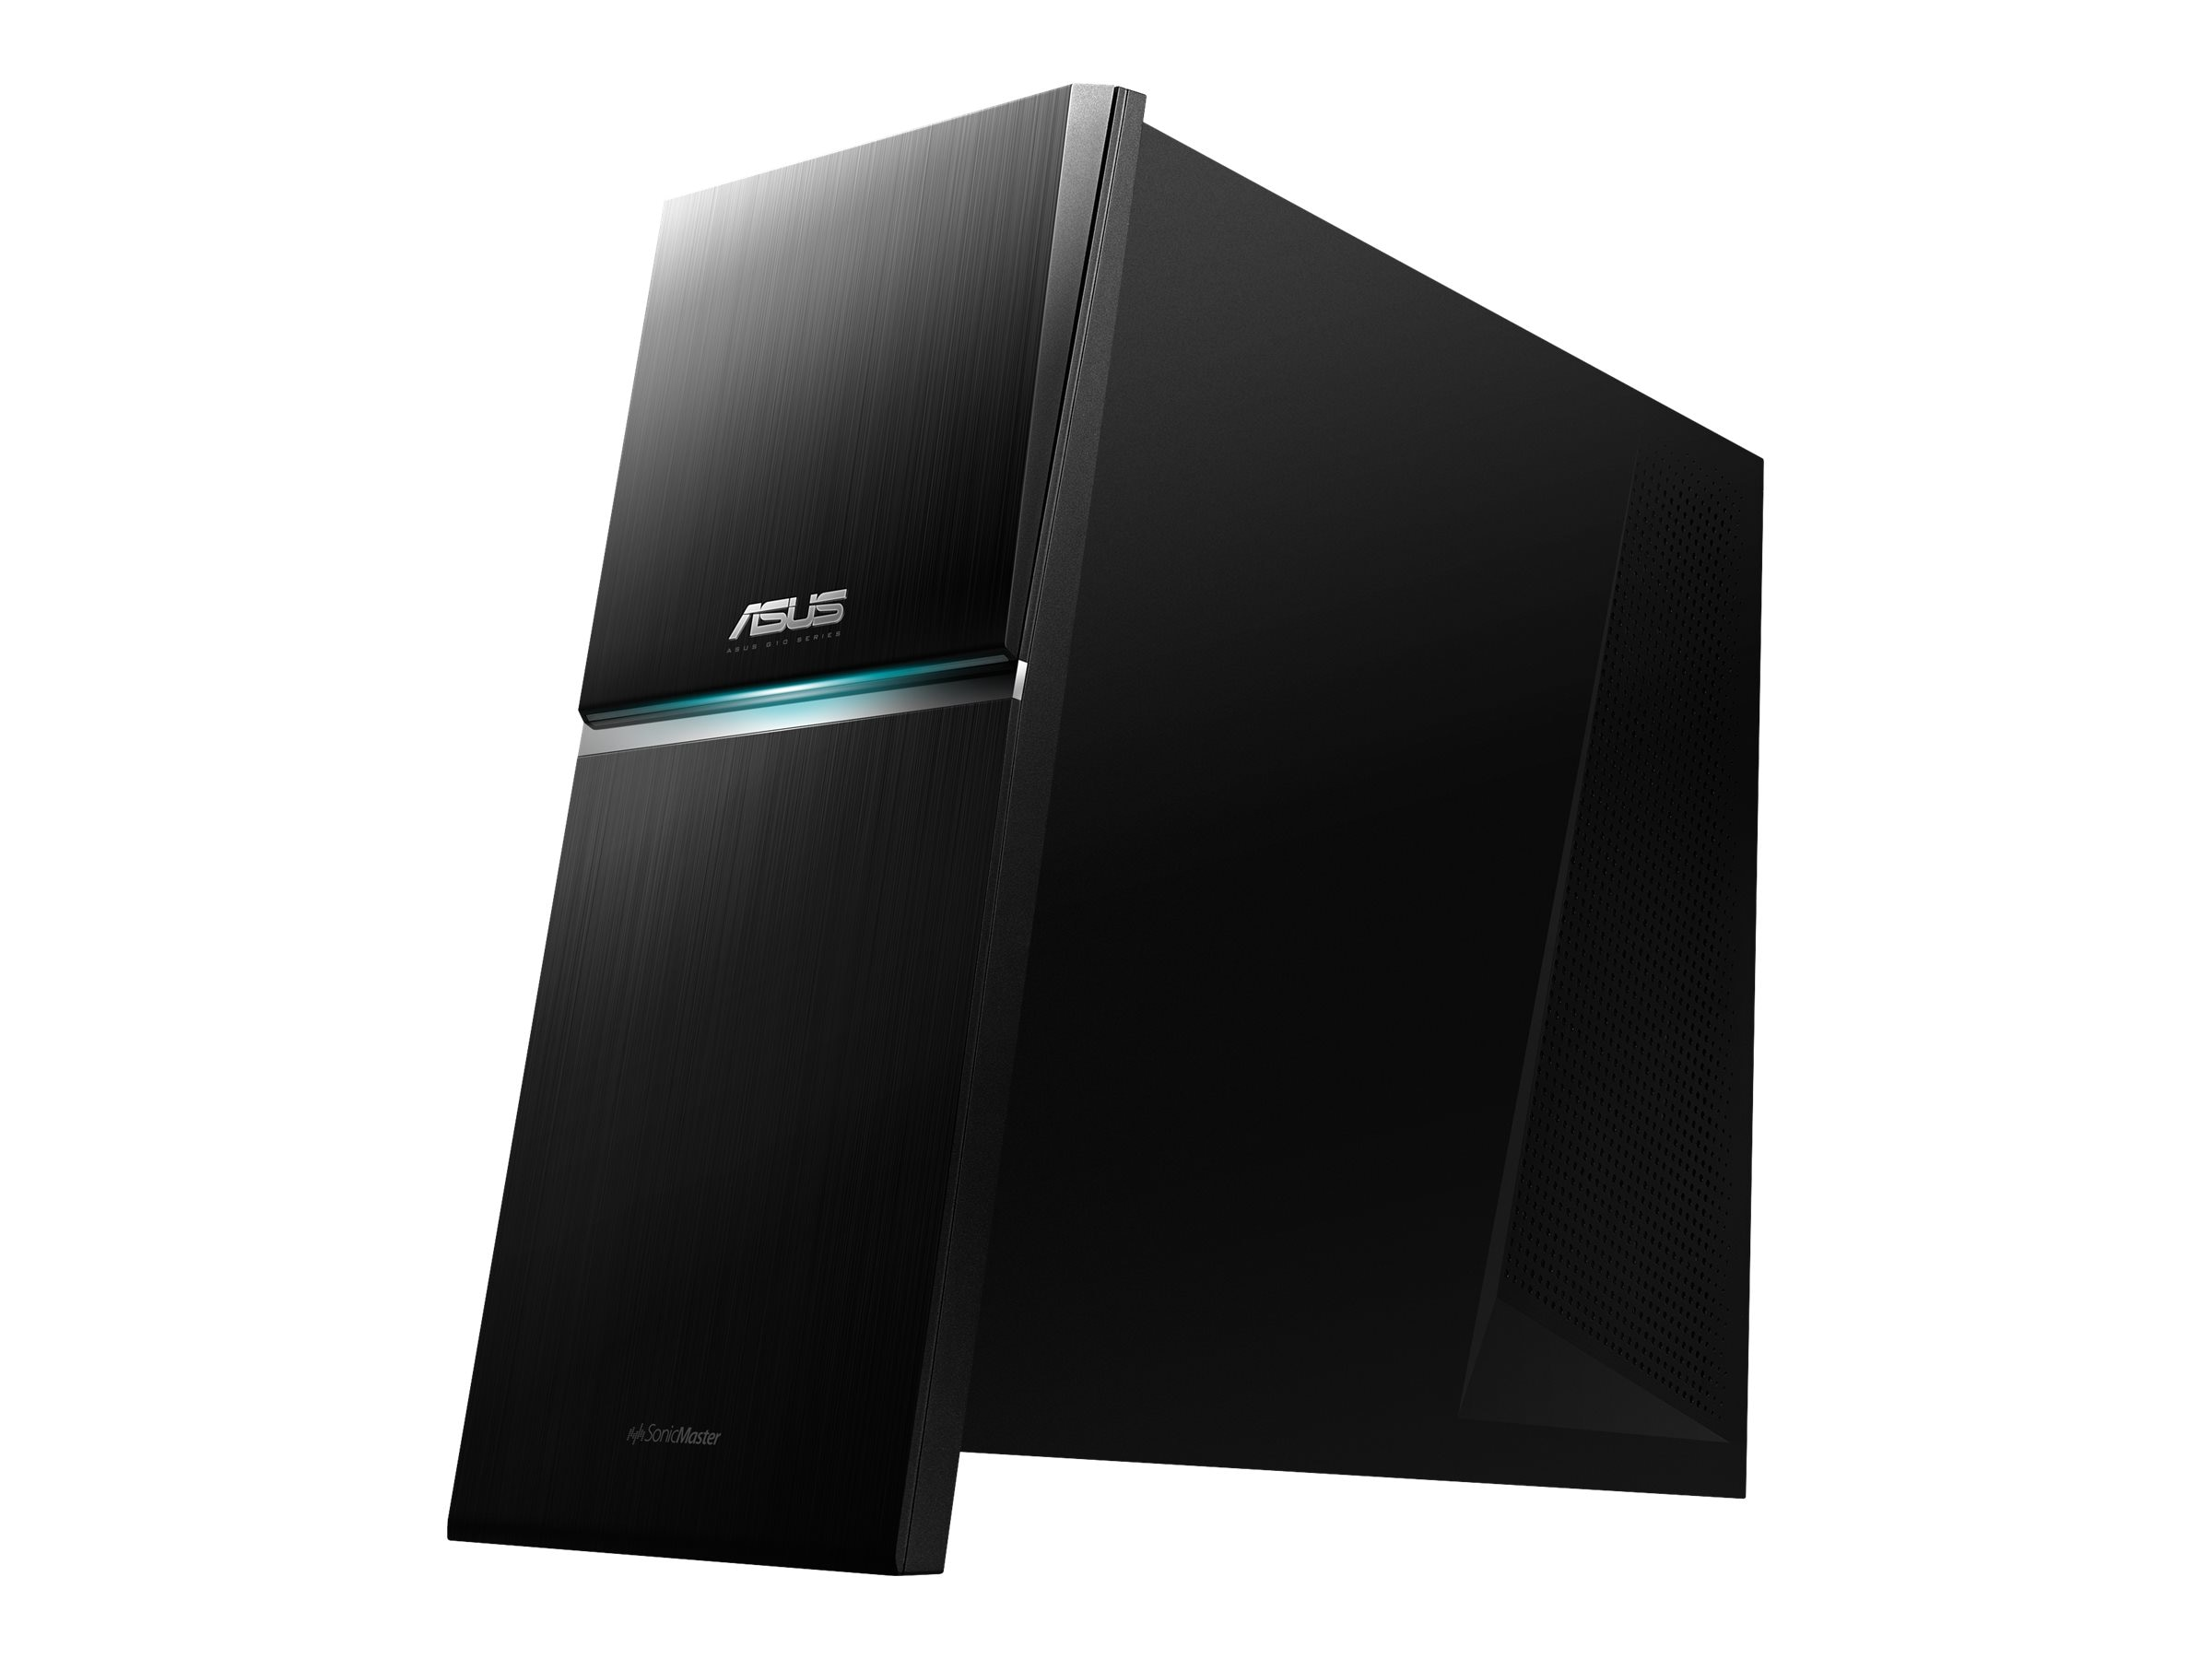 Asus G10AJ-US010S Desktop PC Core i7-4790 16GB 2TB W8.1, G10AJ-US010S, 18446393, Desktops